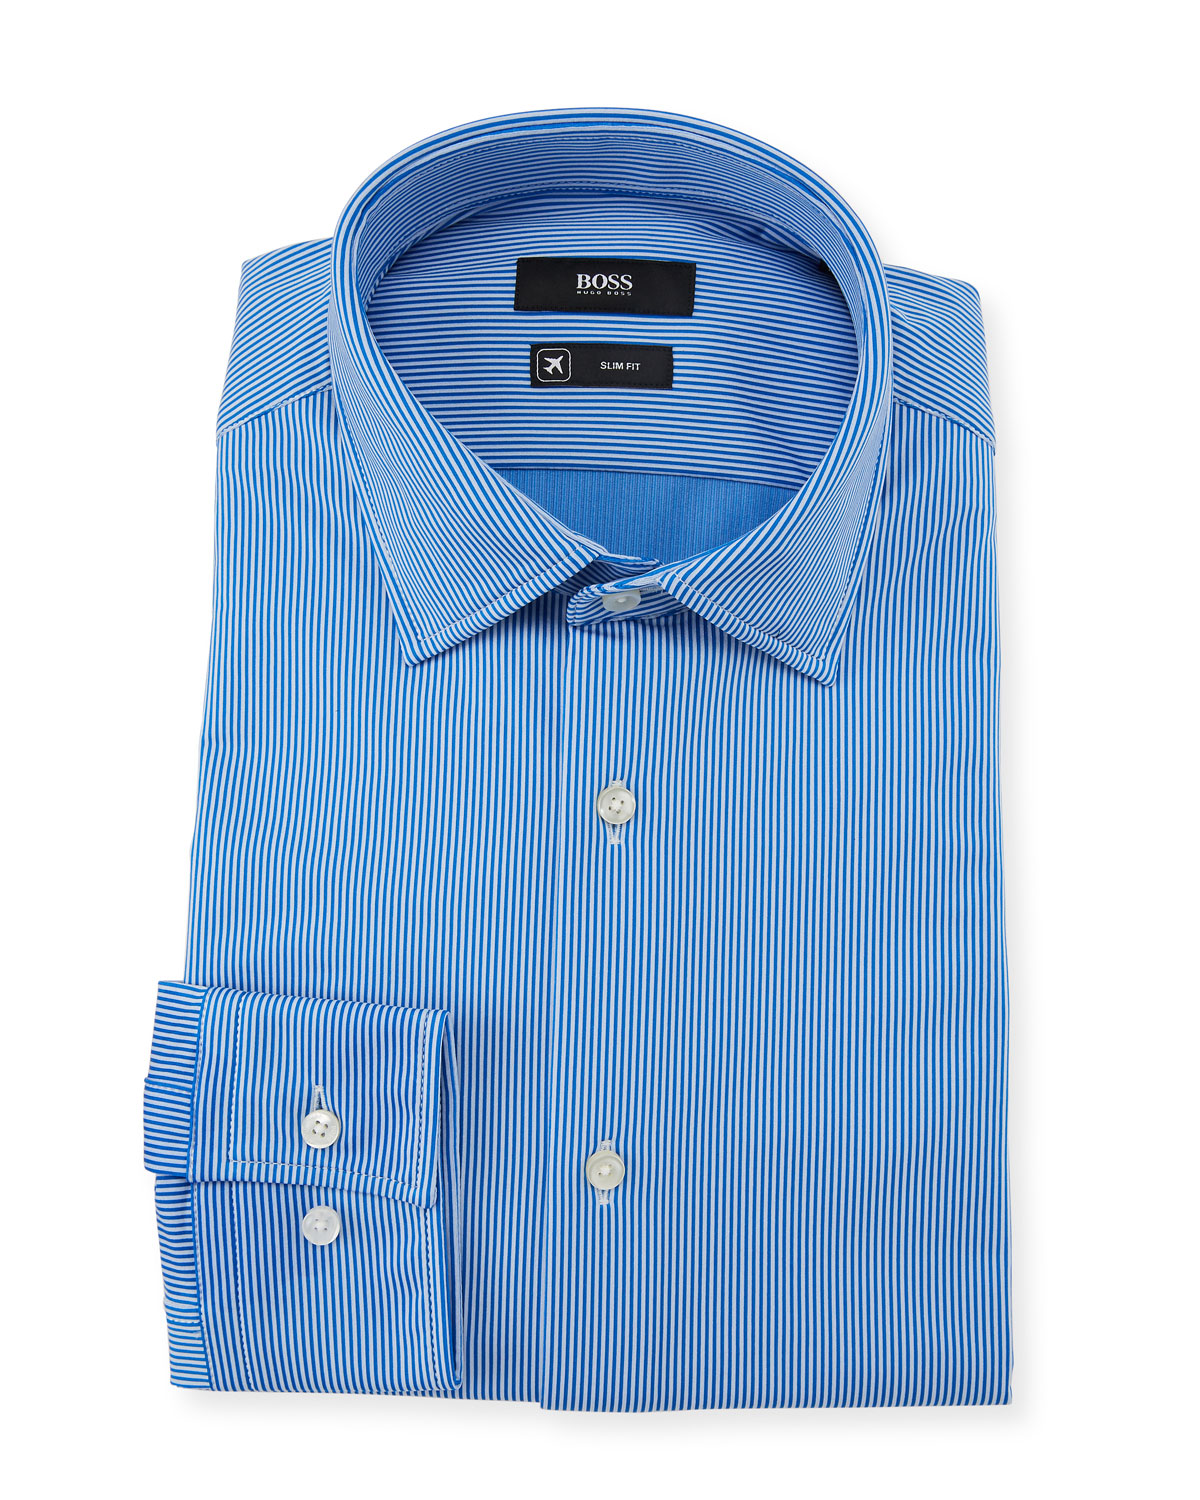 Men's Slim Fit Striped Performance Dress Shirt